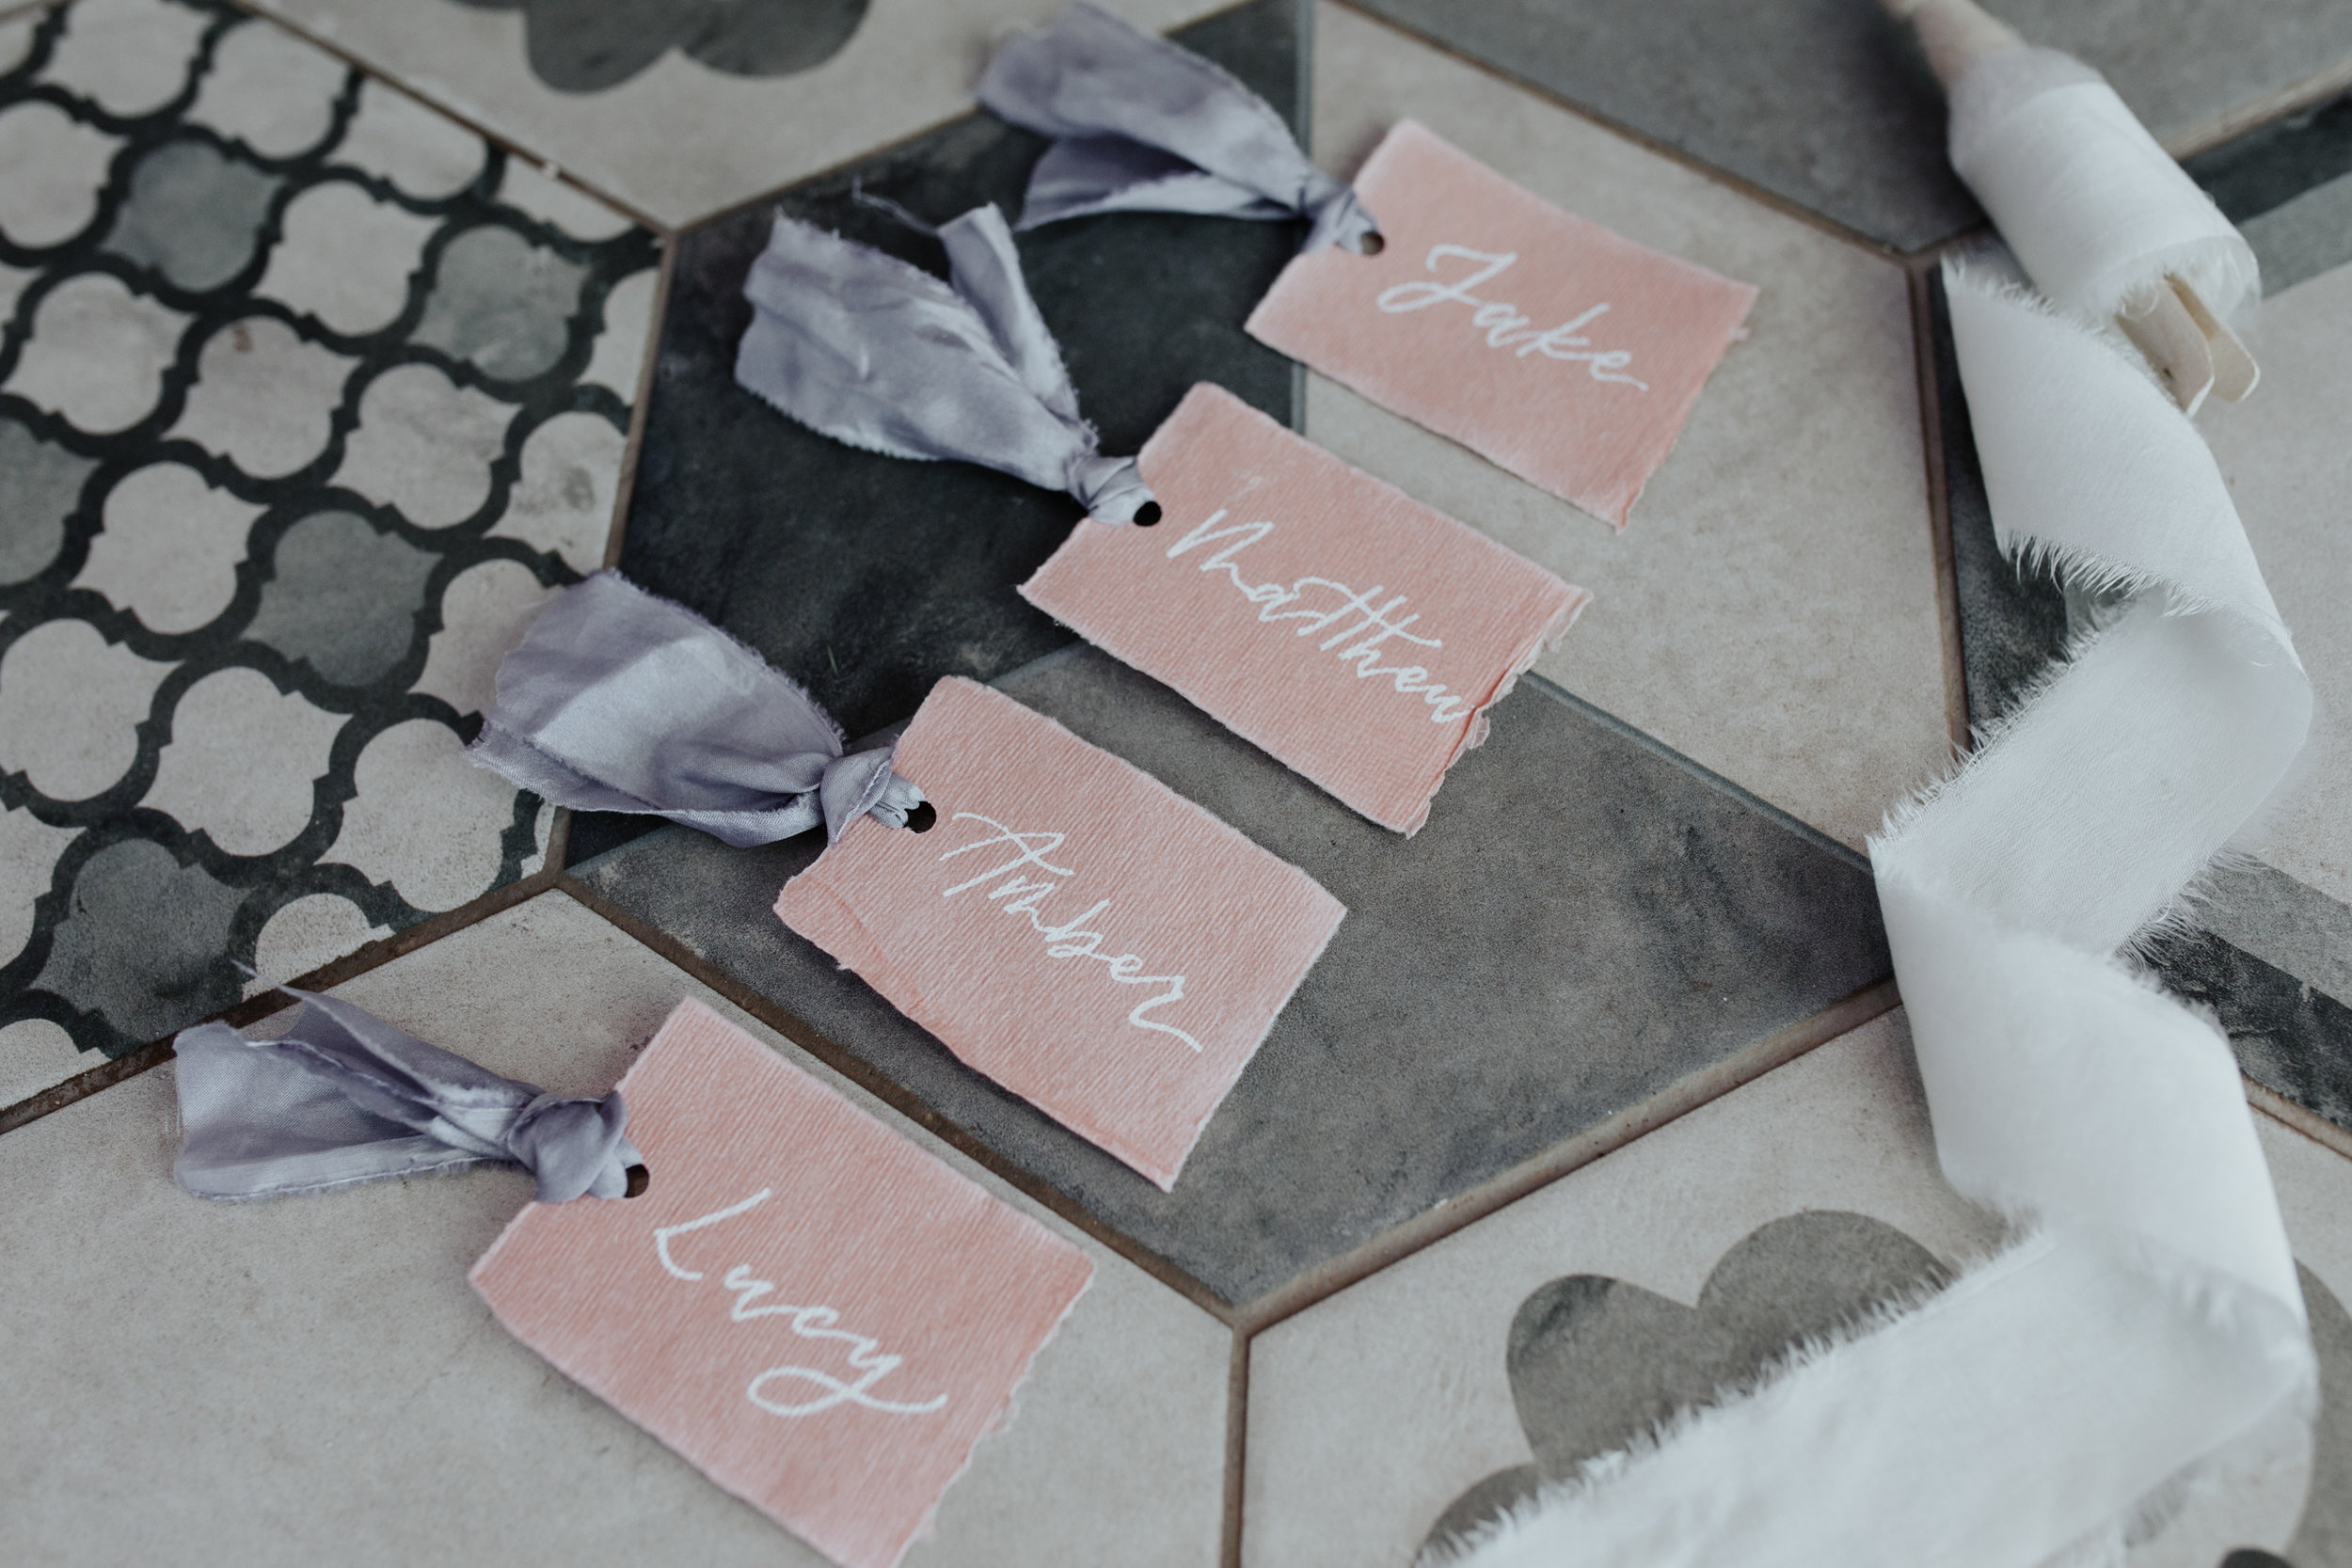 Modern calligraphy white ink wedding place cards with silk ribbon by Studio Oudizo, Cheltenham